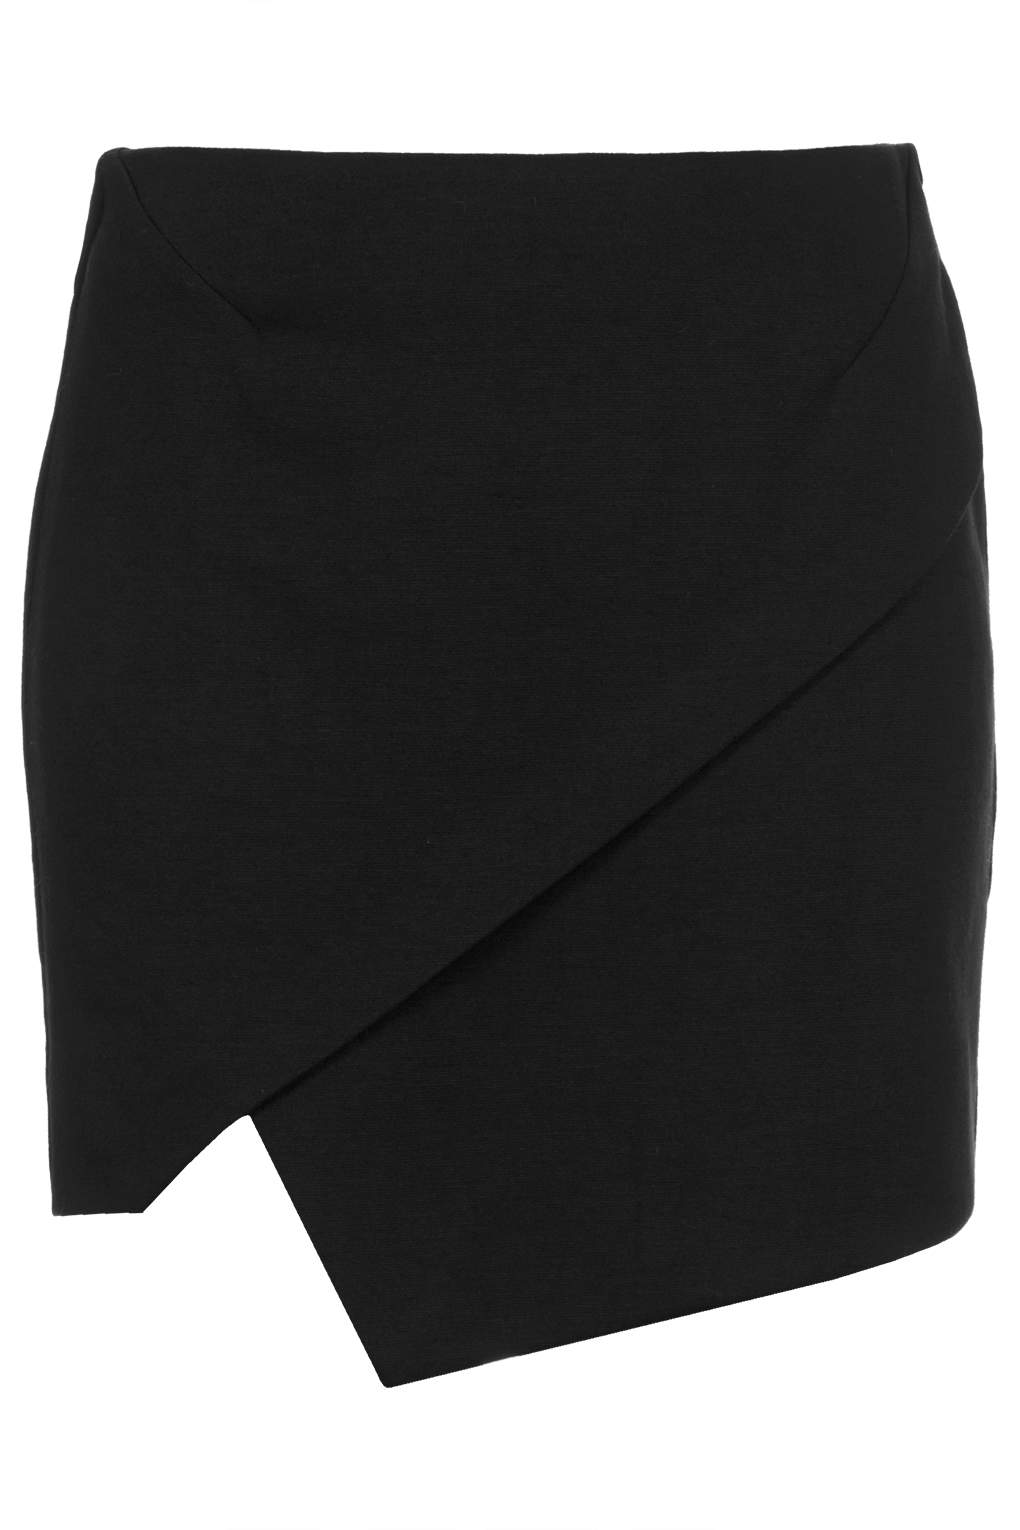 Wrap Mini Skirt - Skirts - Clothing